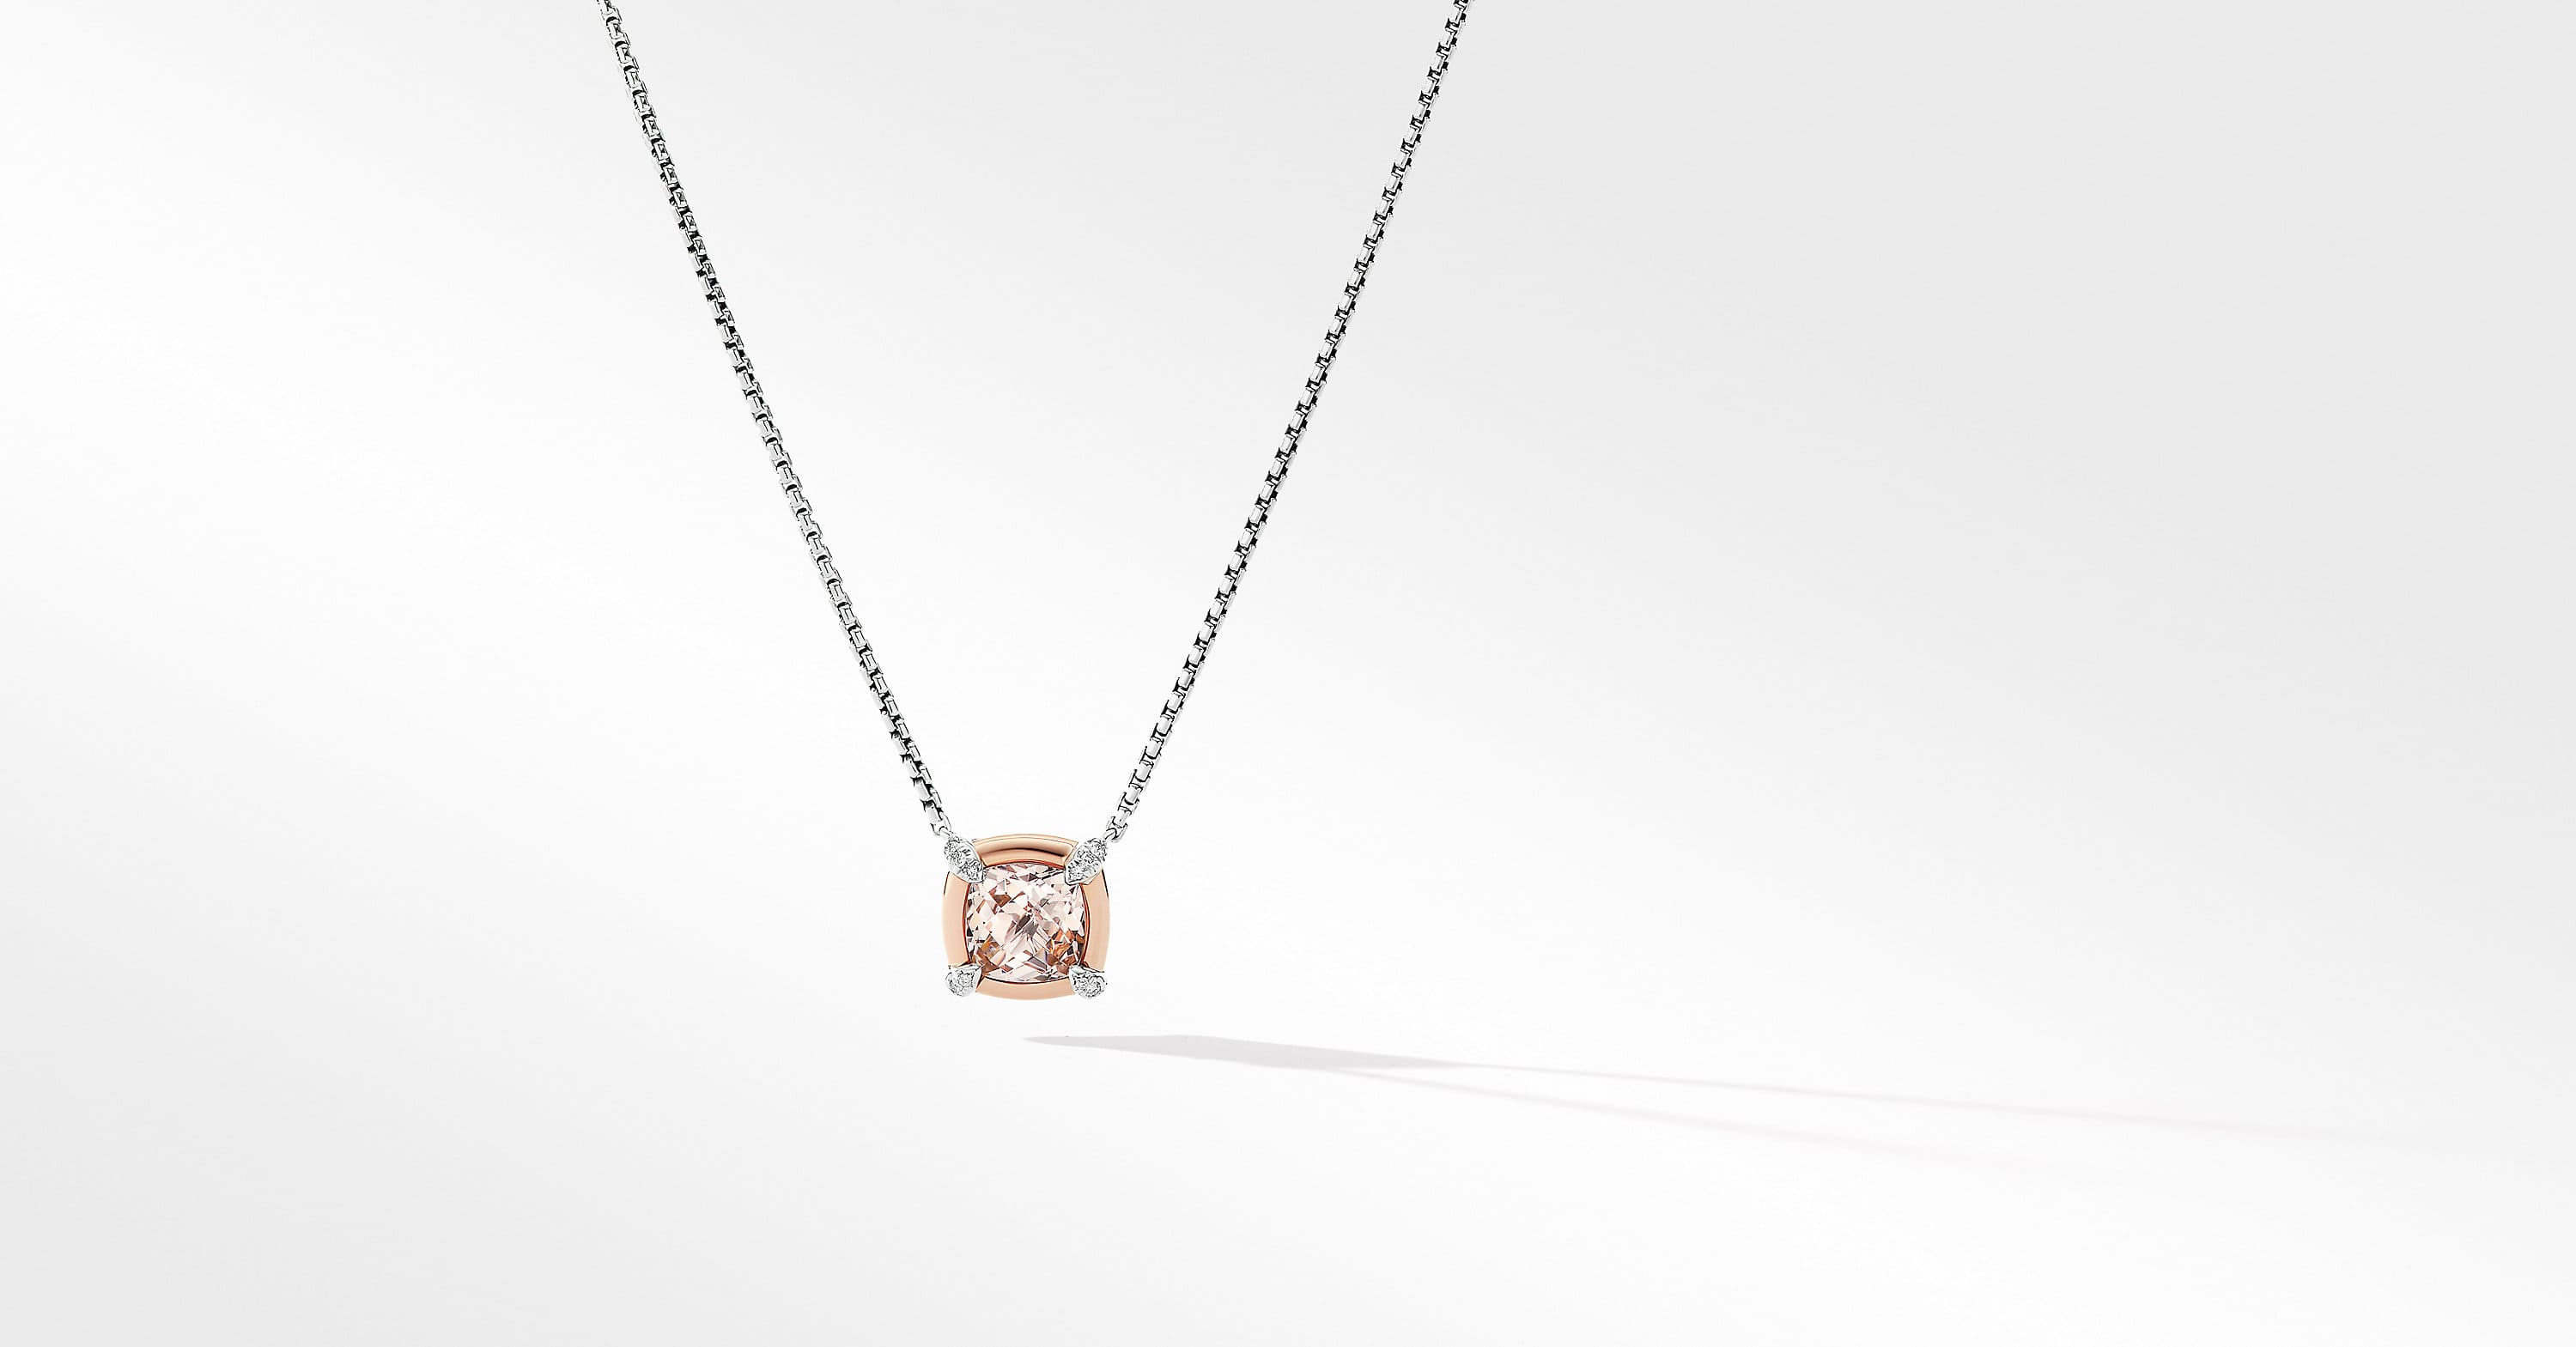 Petite Chatelaine Pendant Necklace with 18K Rose Gold Bezel and Diamonds, 10mm